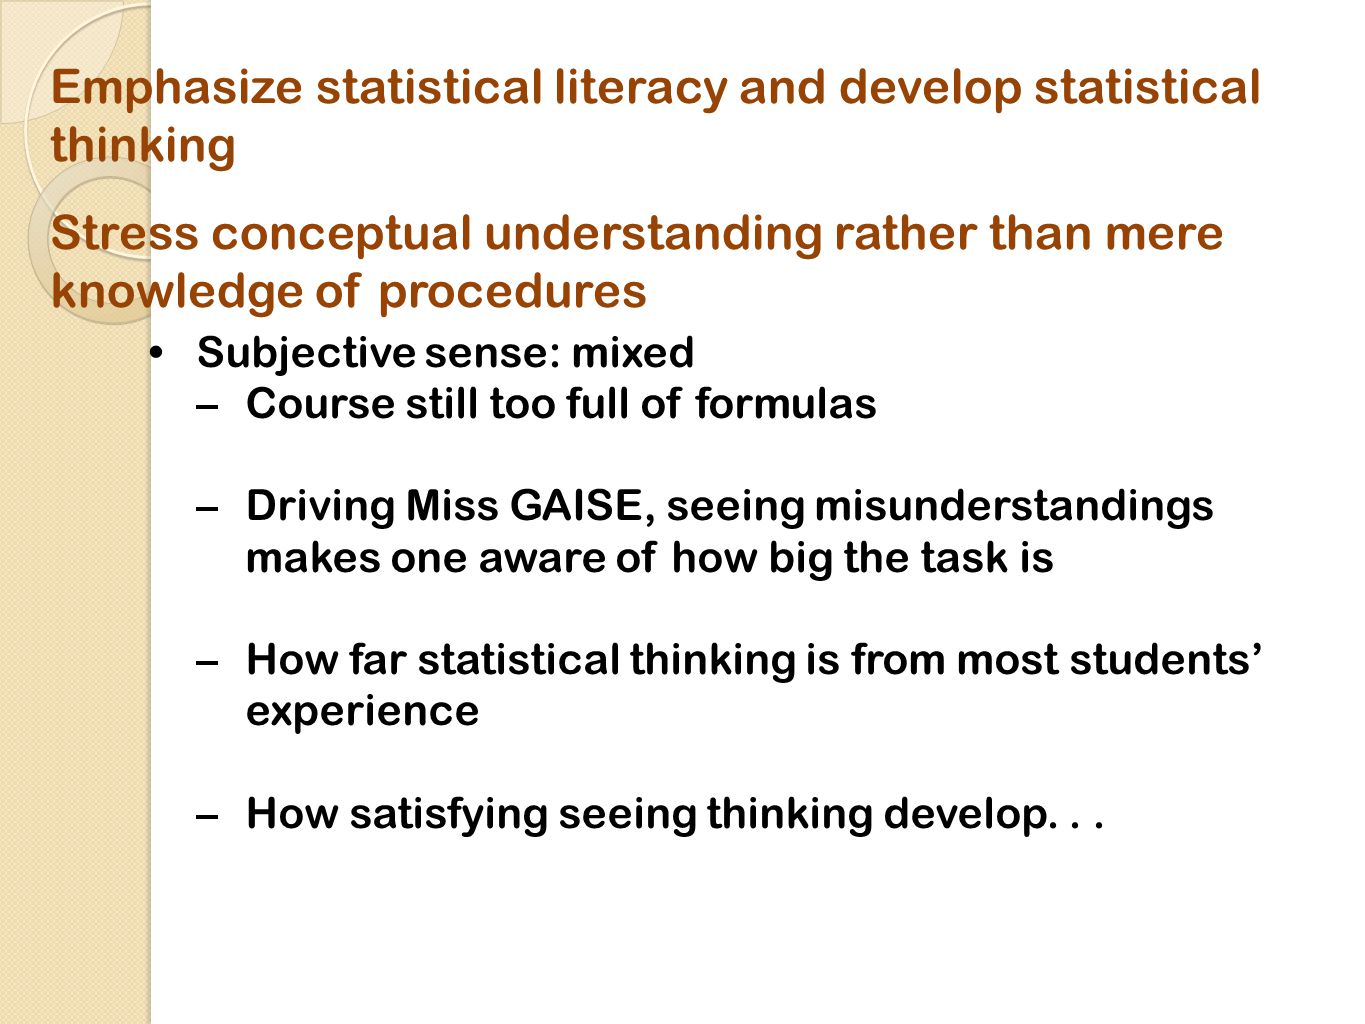 Emphasize statistical literacy and develop statistical thinking Stress conceptual understanding rather than mere knowledge of procedures Subjective sense: mixed –Course still too full of formulas –Driving Miss GAISE, seeing misunderstandings makes one aware of how big the task is –How far statistical thinking is from most students' experience –How satisfying seeing thinking develop...